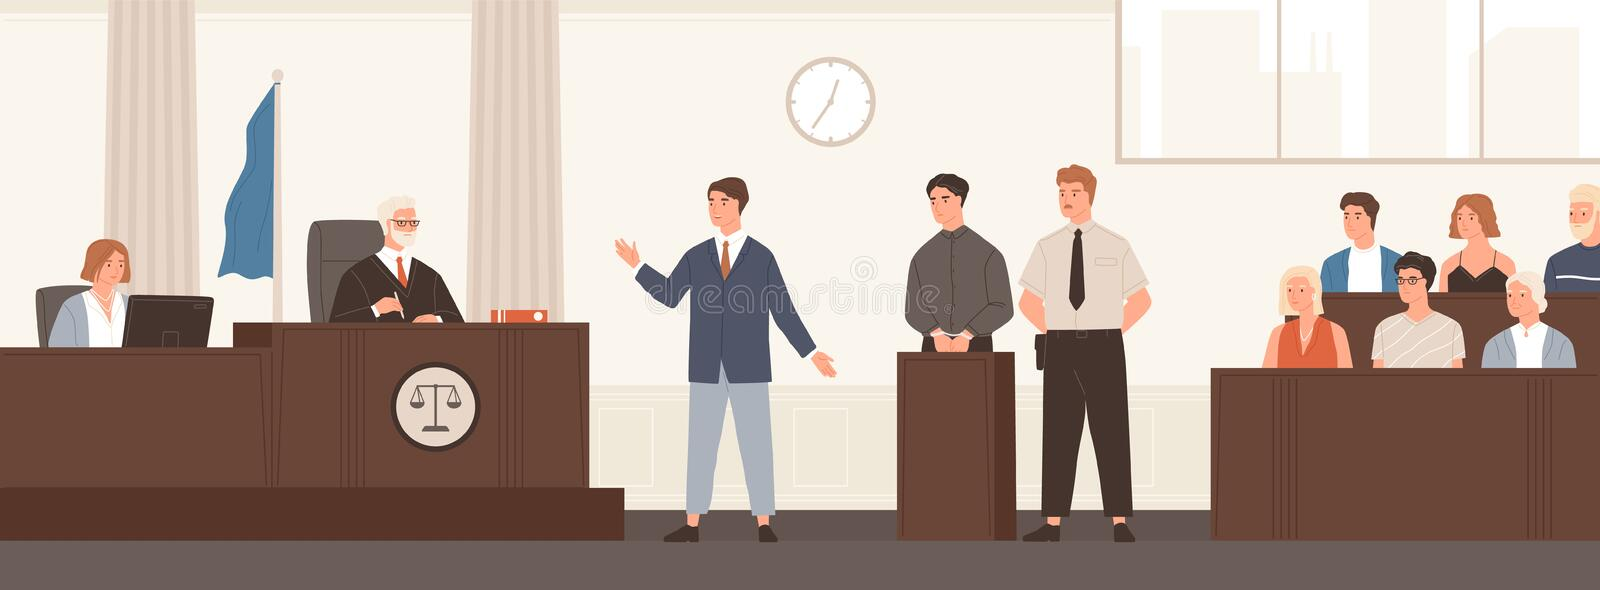 Advocate or barrister giving speech in courtroom in front of judge and jury. Legal defence, public hearing and criminal. Procedure at court or tribunal. Flat royalty free illustration